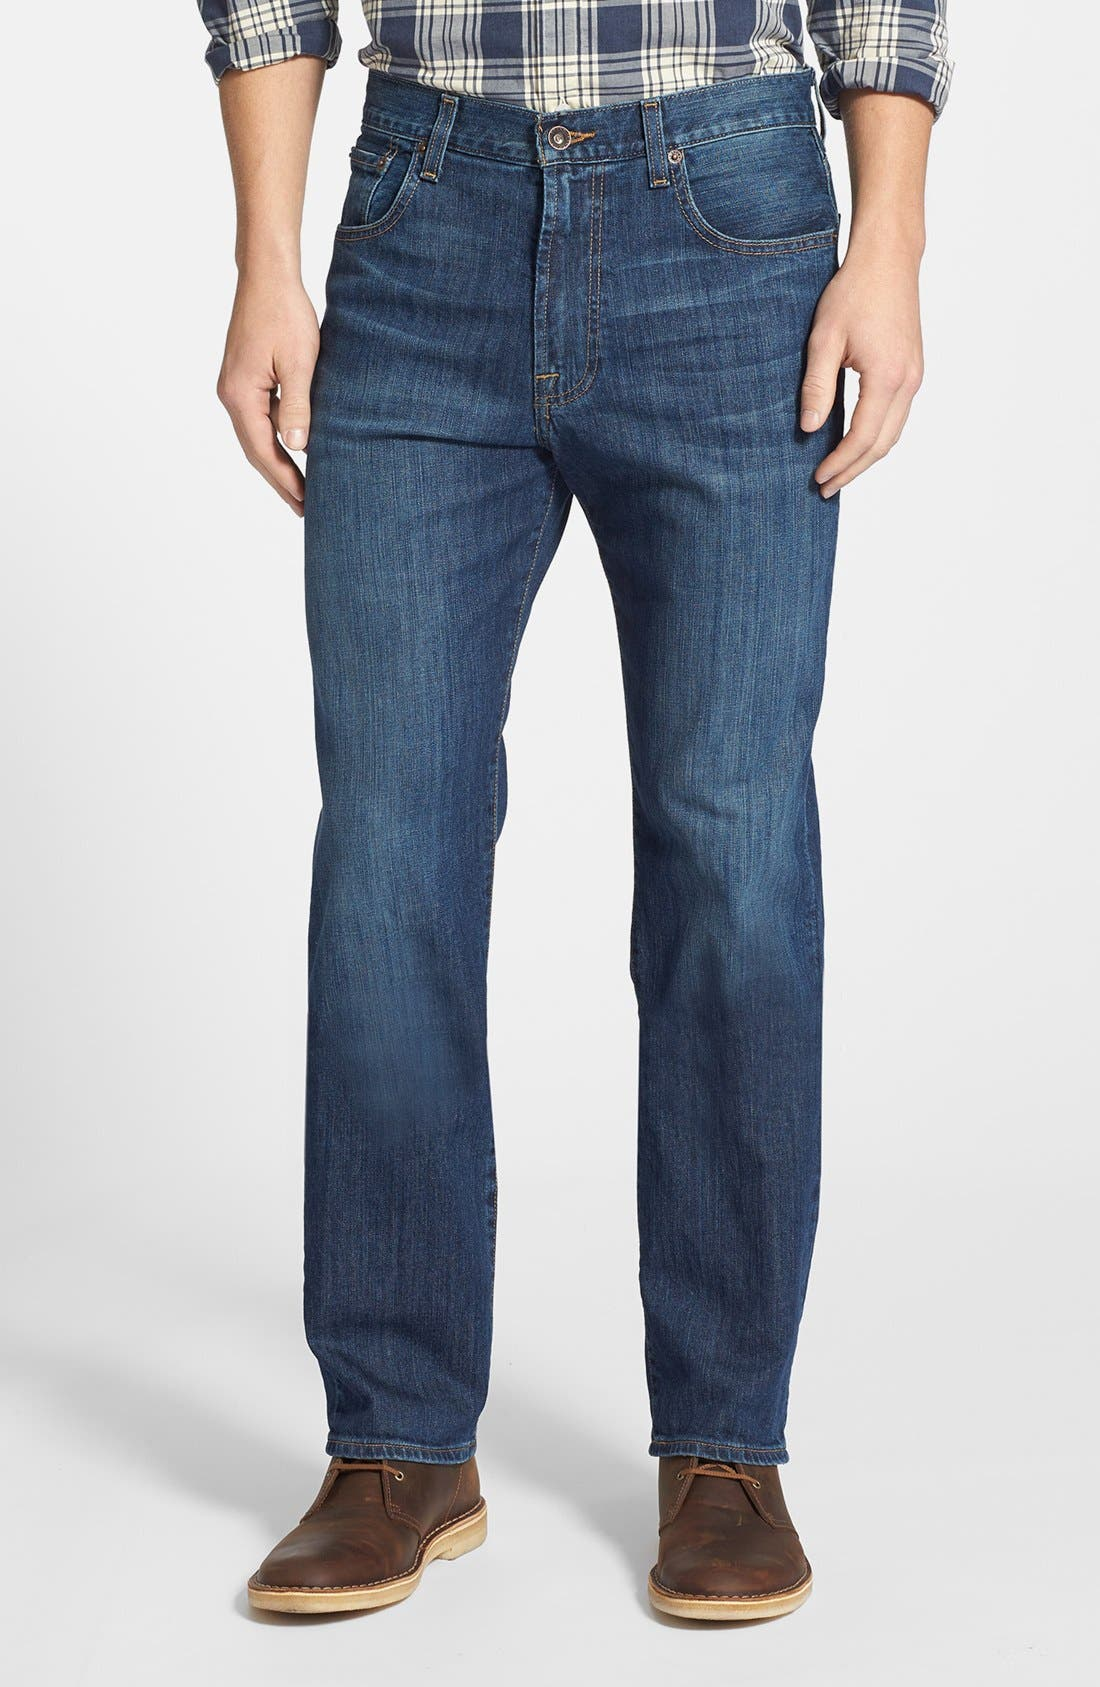 Alternate Image 1 Selected - Lucky Brand '481' Relaxed Fit Jeans (Mazatlan)